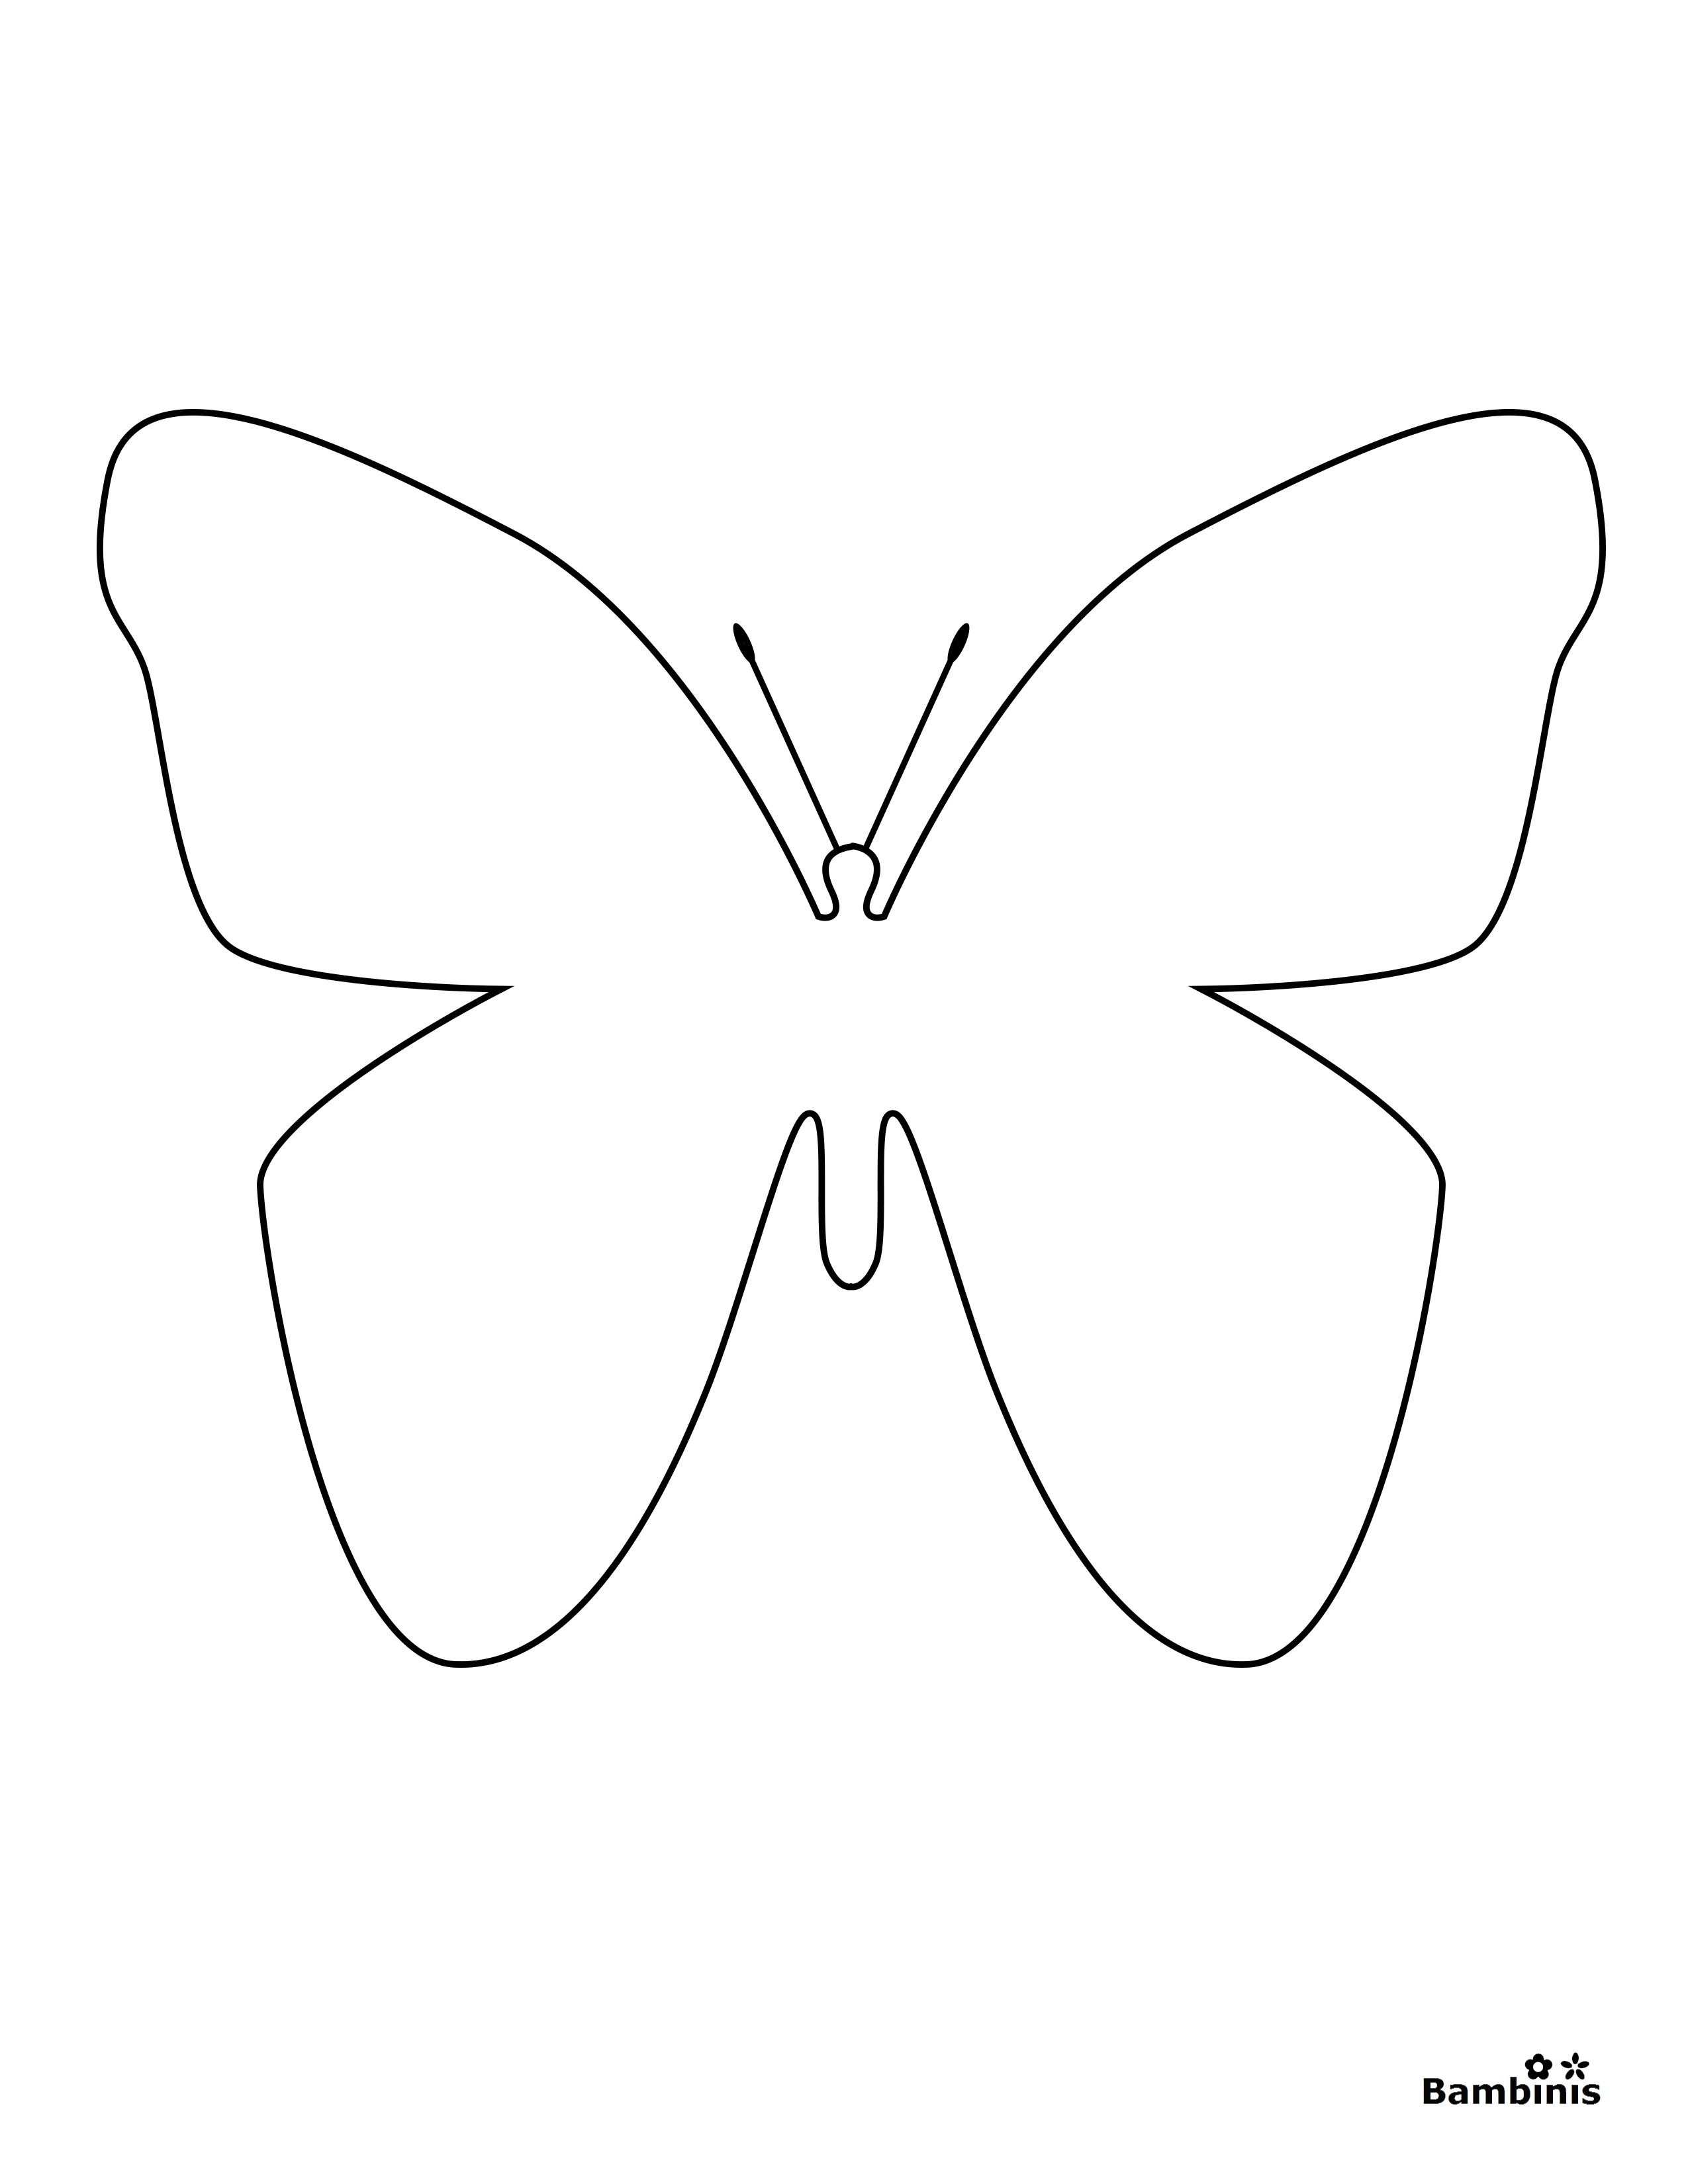 simple easy butterfly coloring pages butterfly coloring pages simple coloring pages for kids coloring butterfly easy pages simple